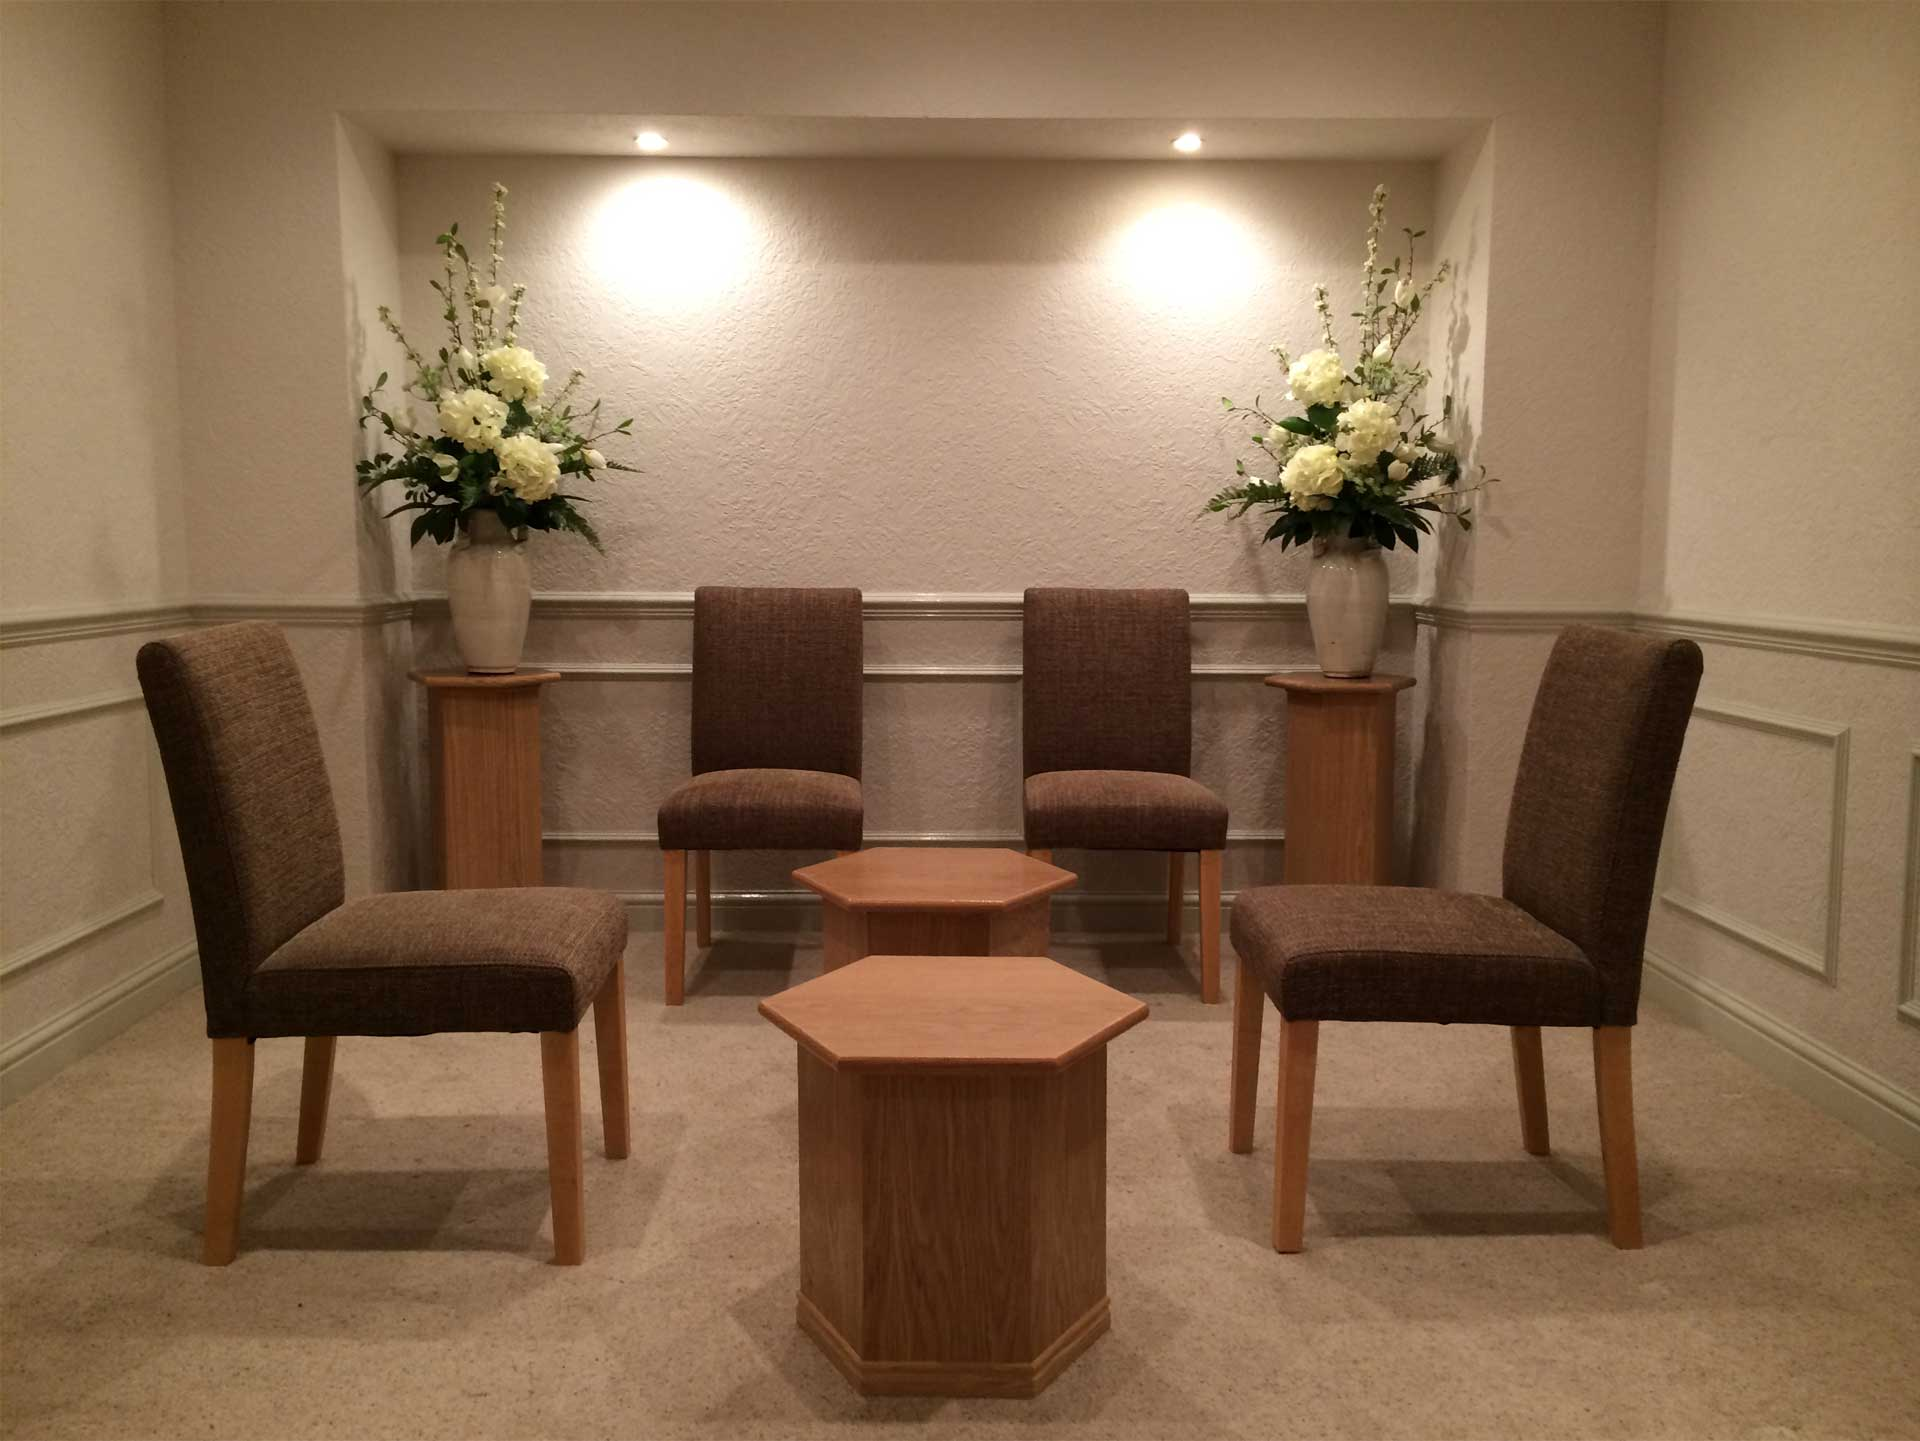 Funeral Directors Oldswinford